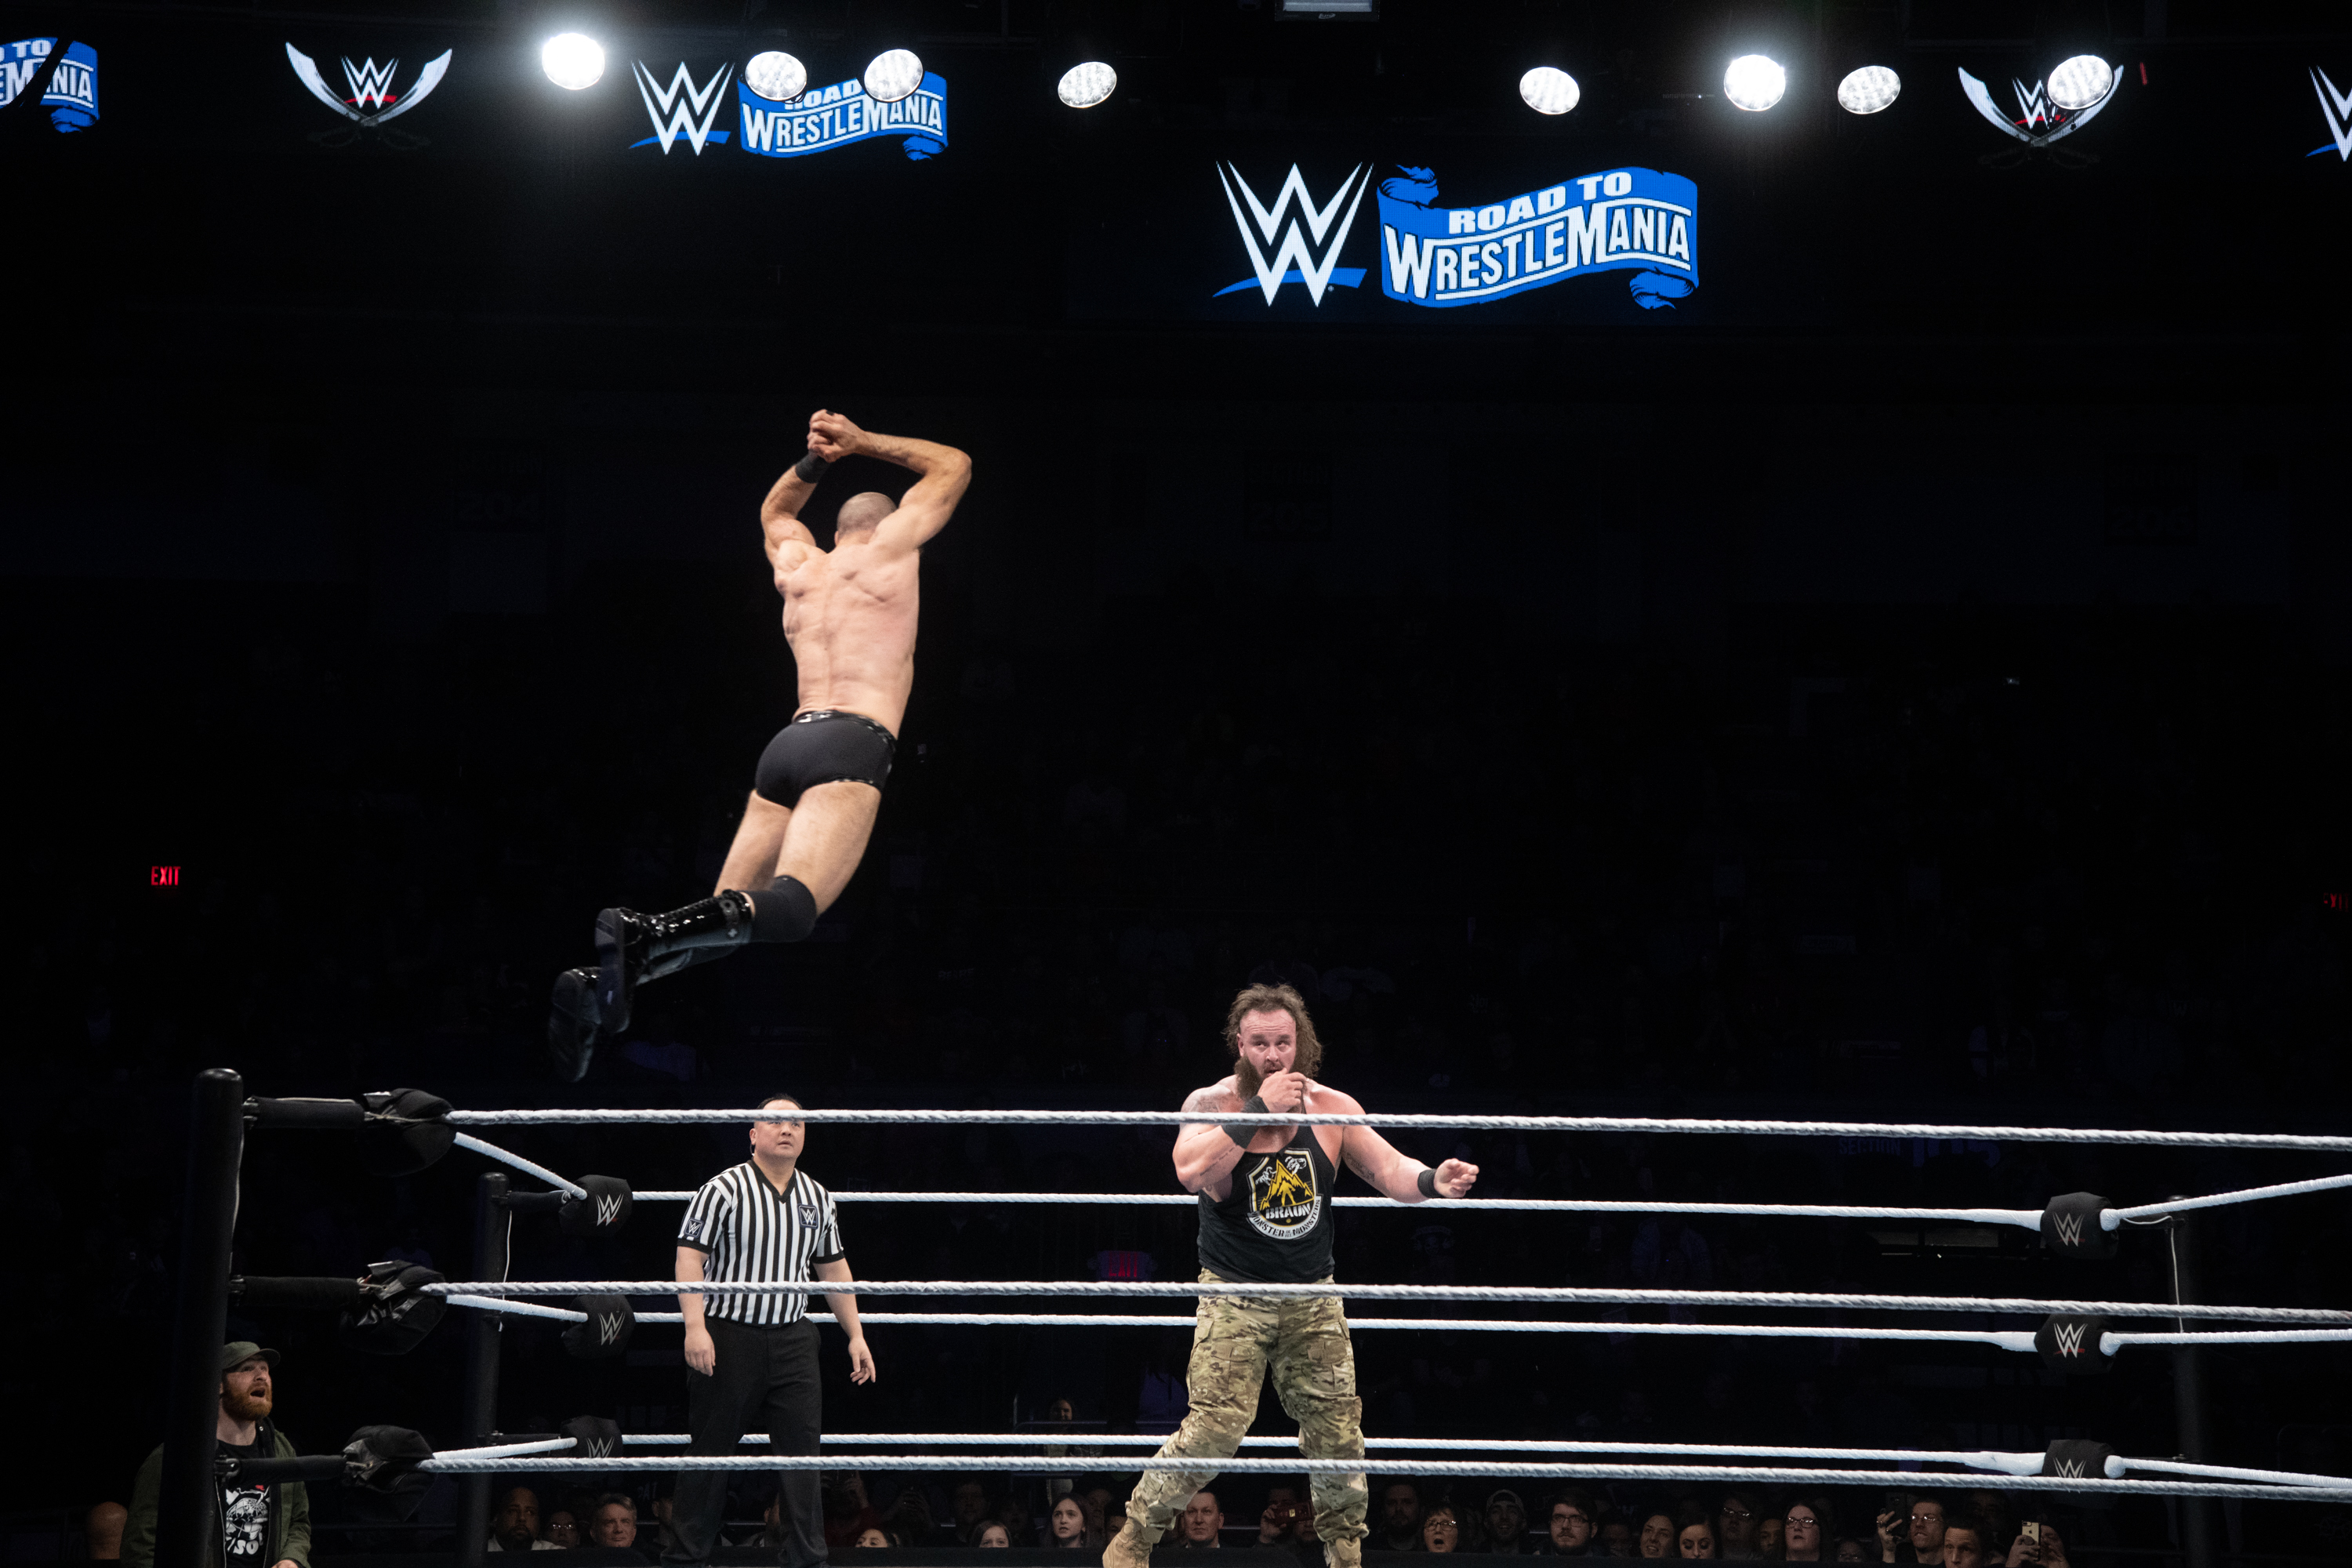 WWE Comes to Upstate New York